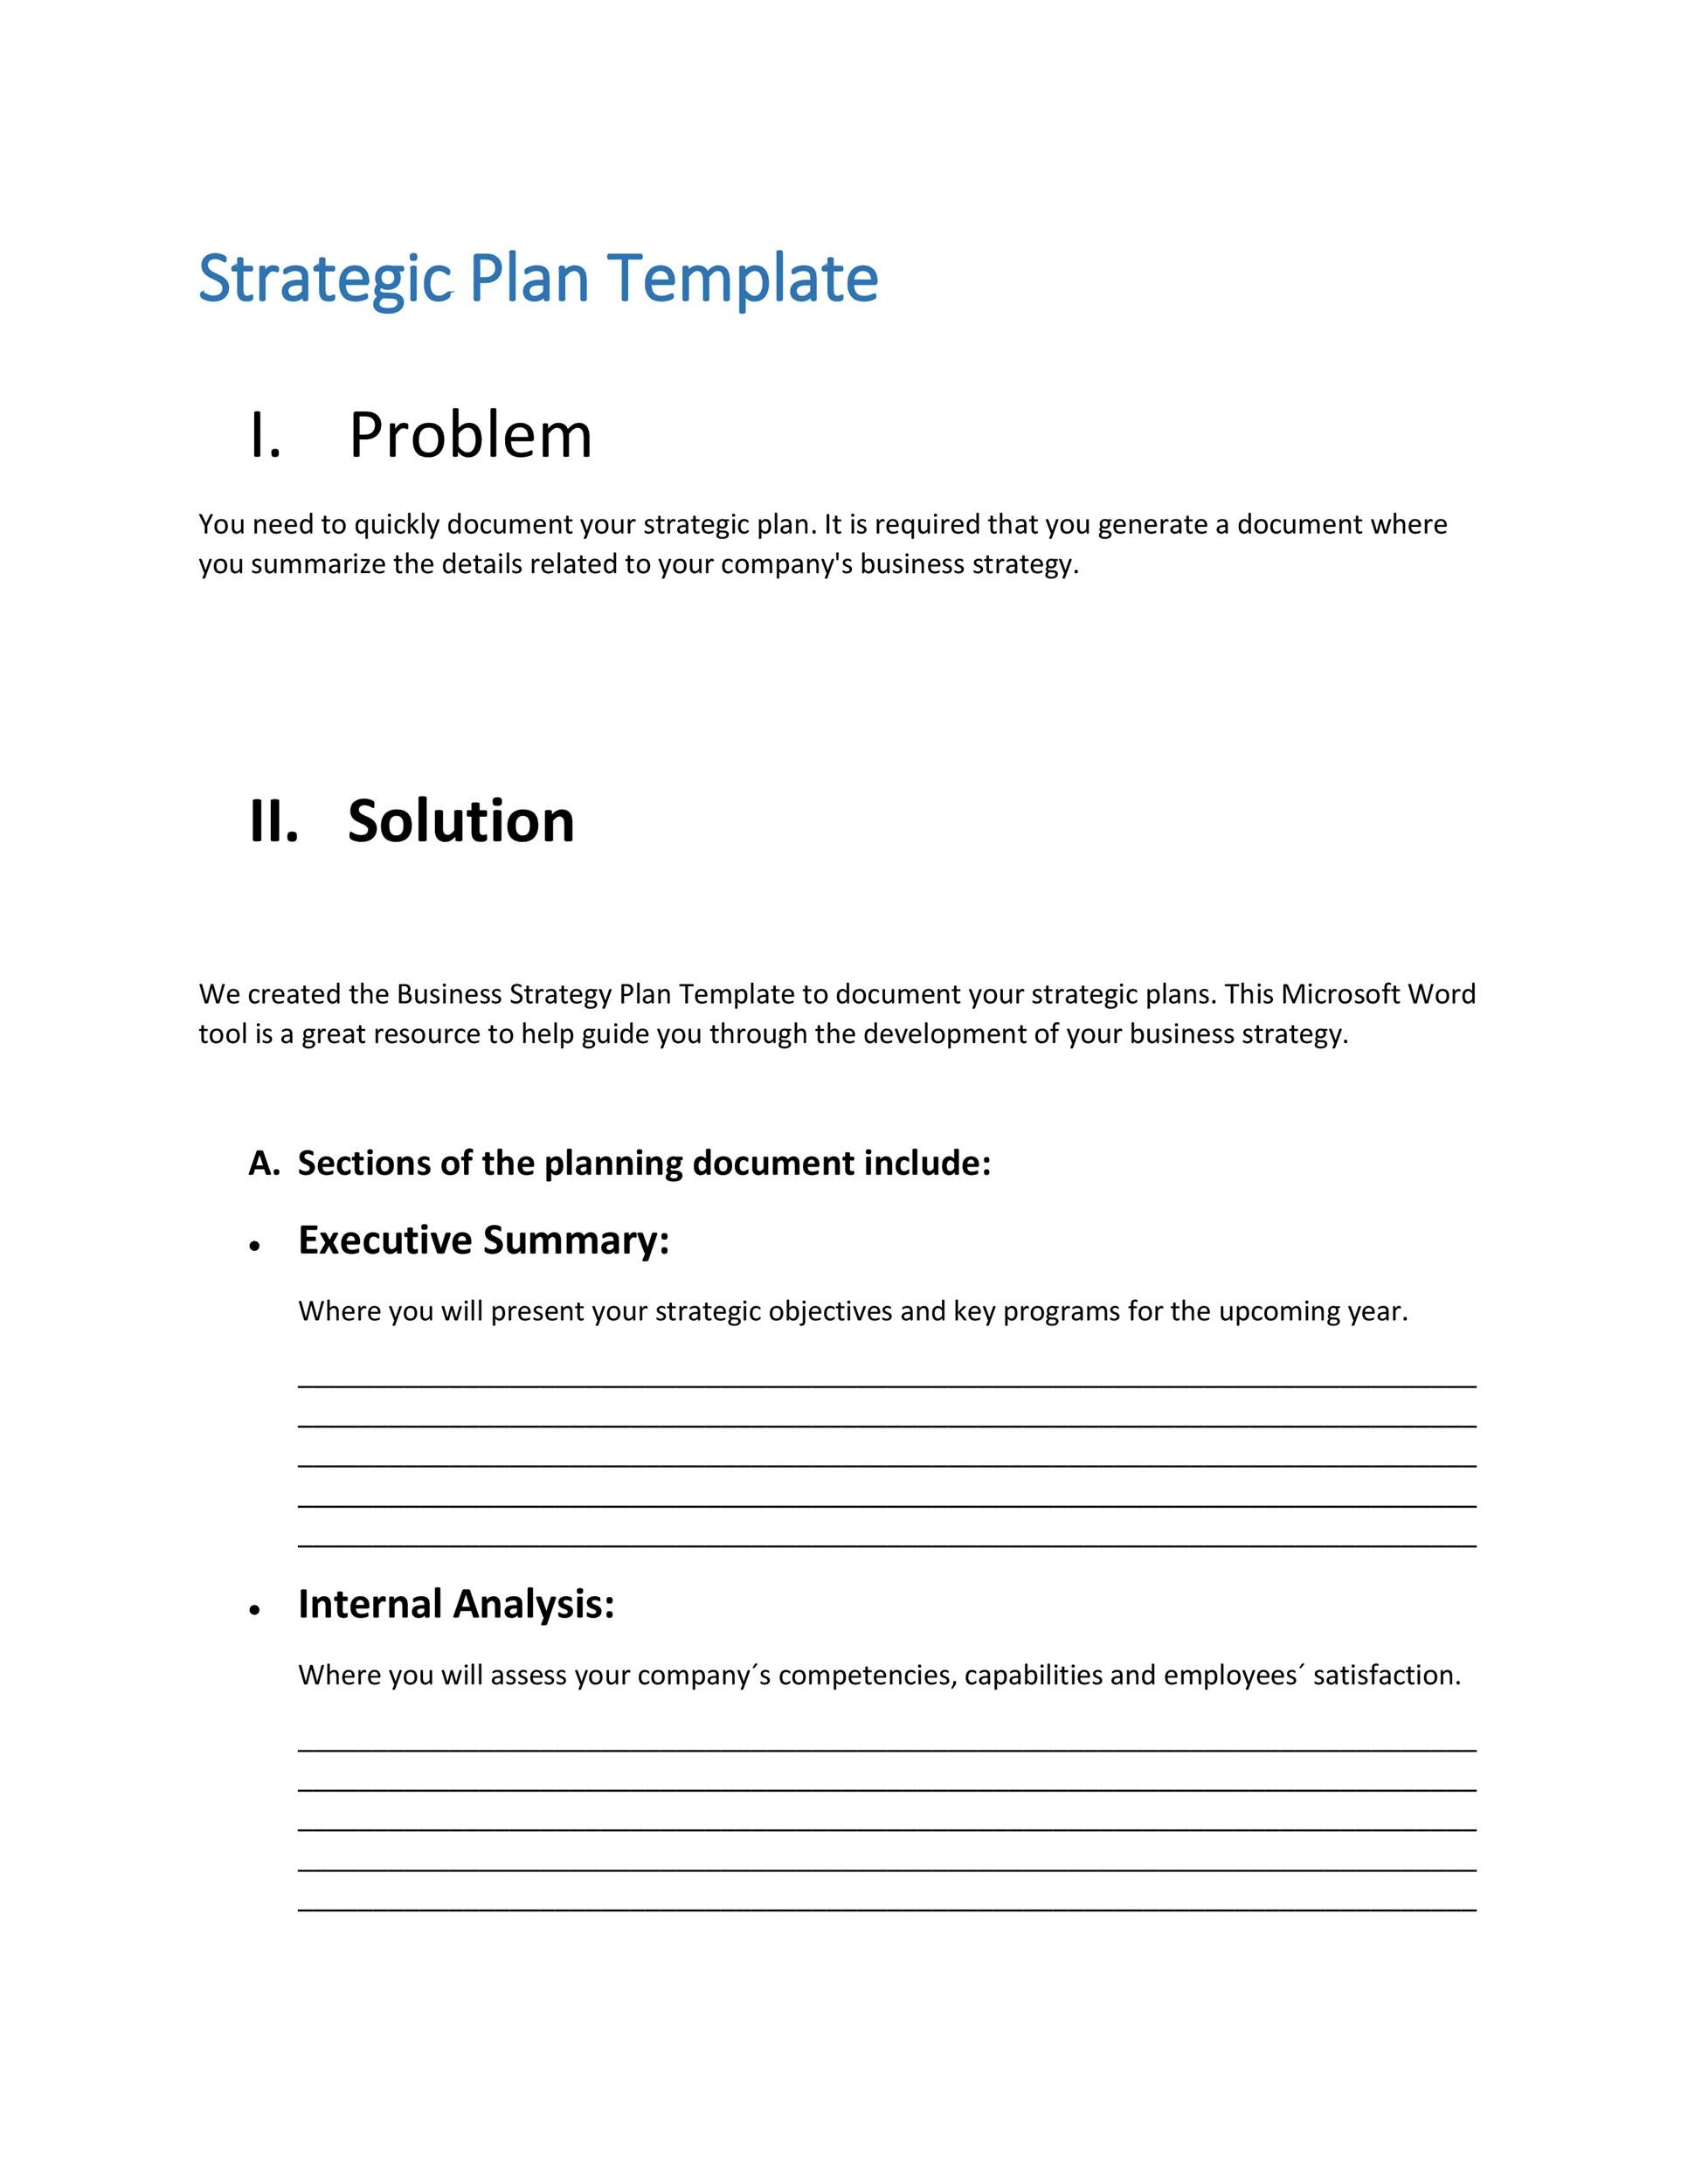 32 Great Strategic Plan Templates To Grow Your Business